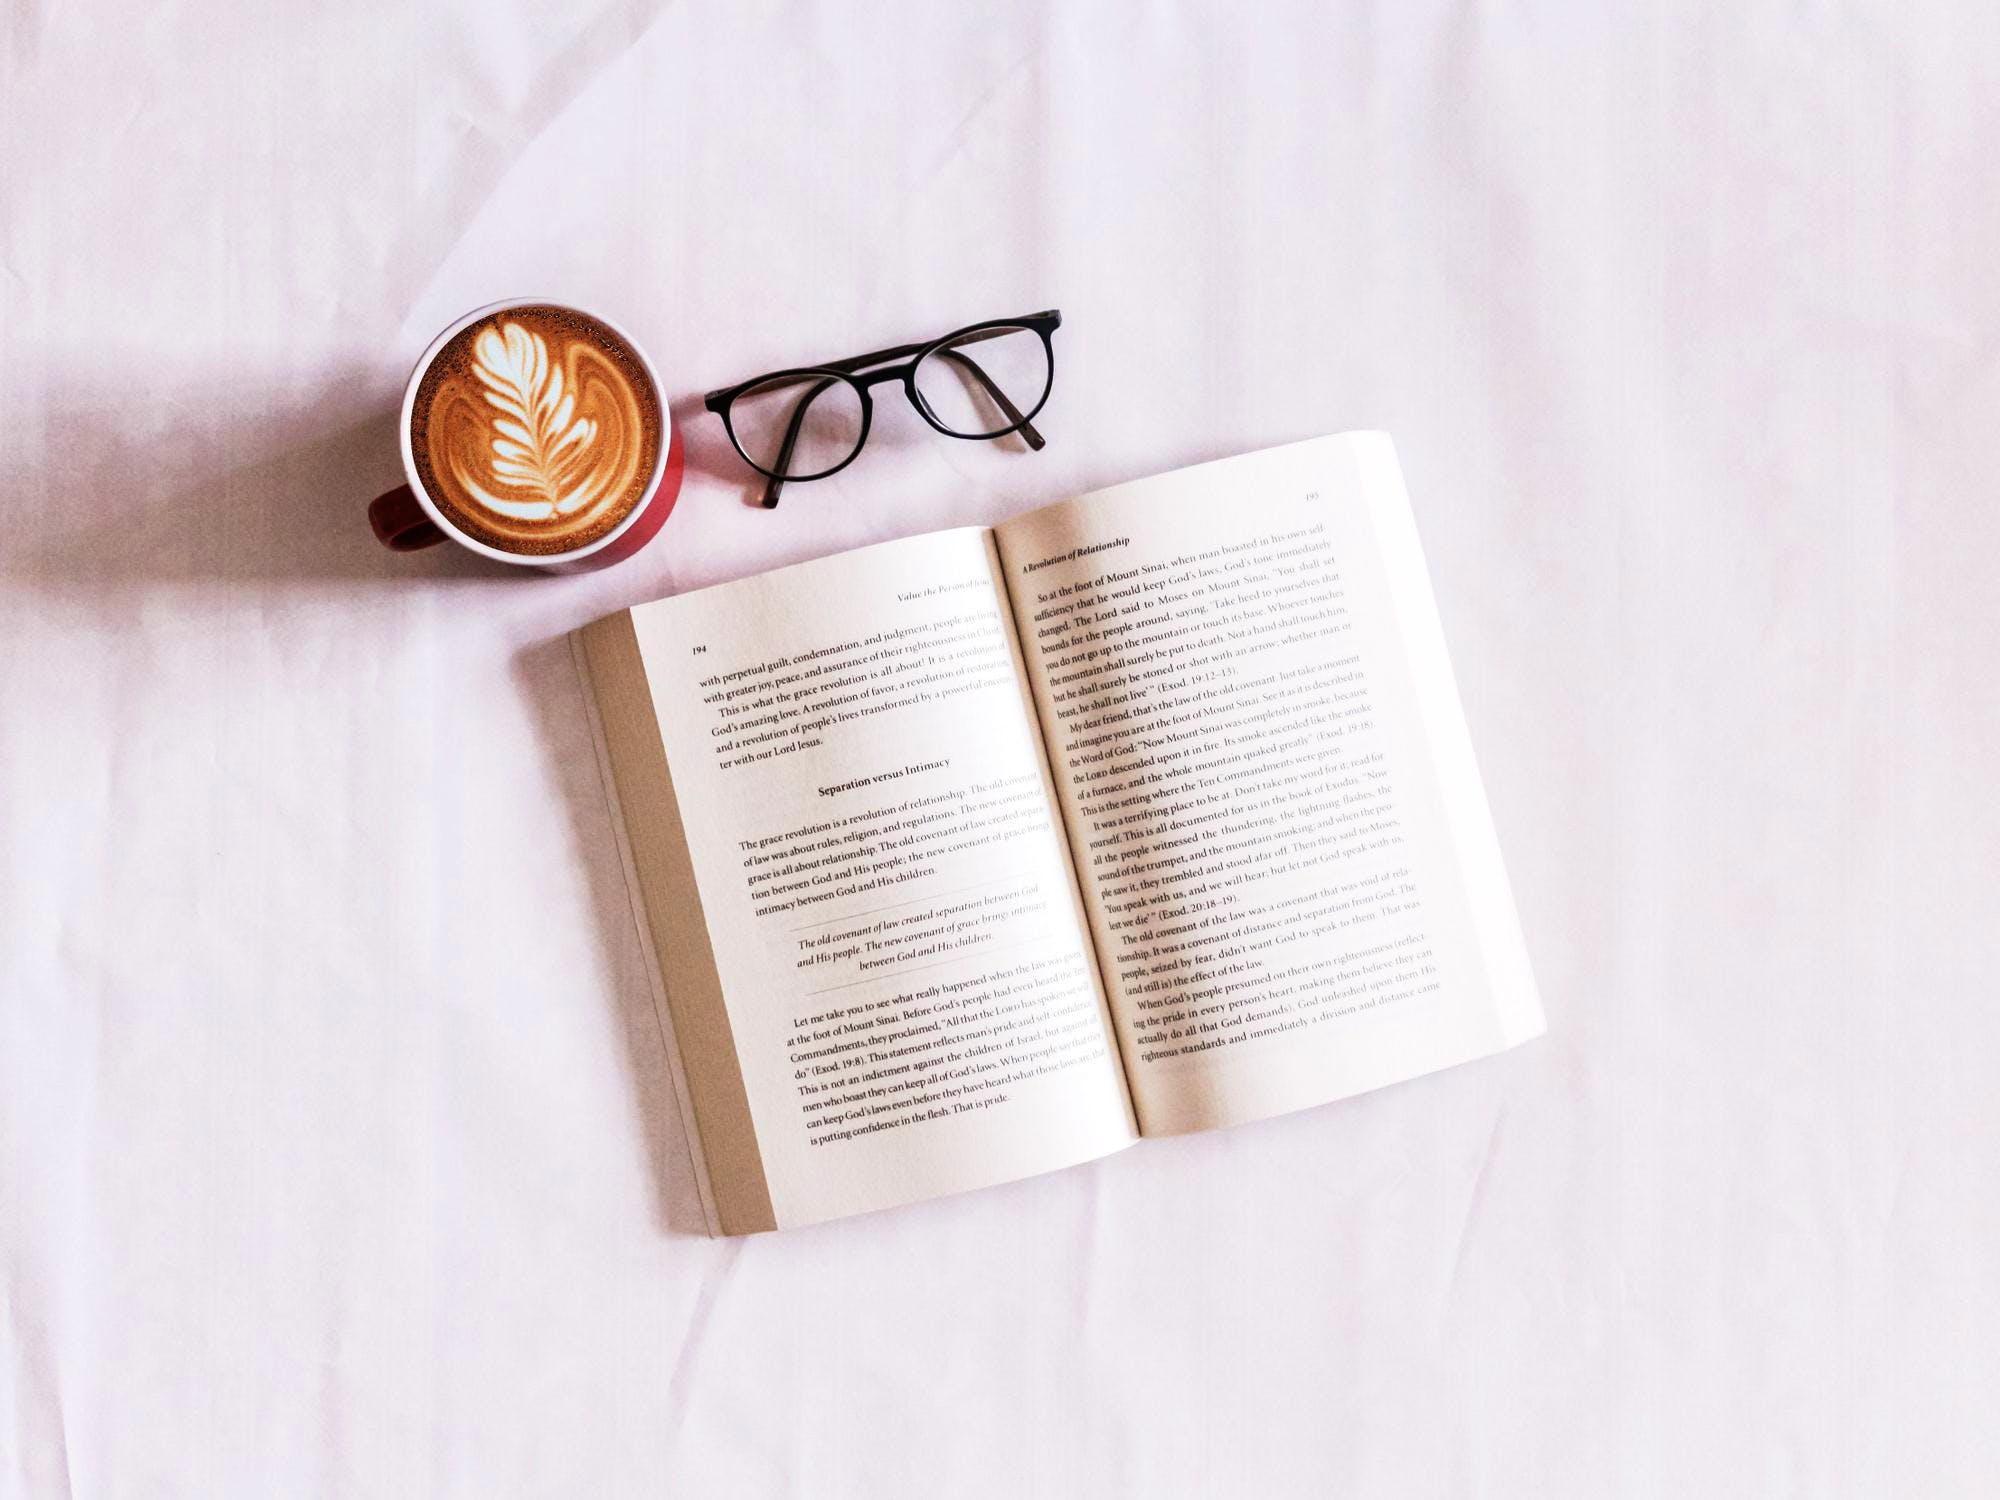 5 Books All Entrepreneurs Should Read According to Labs Mentors